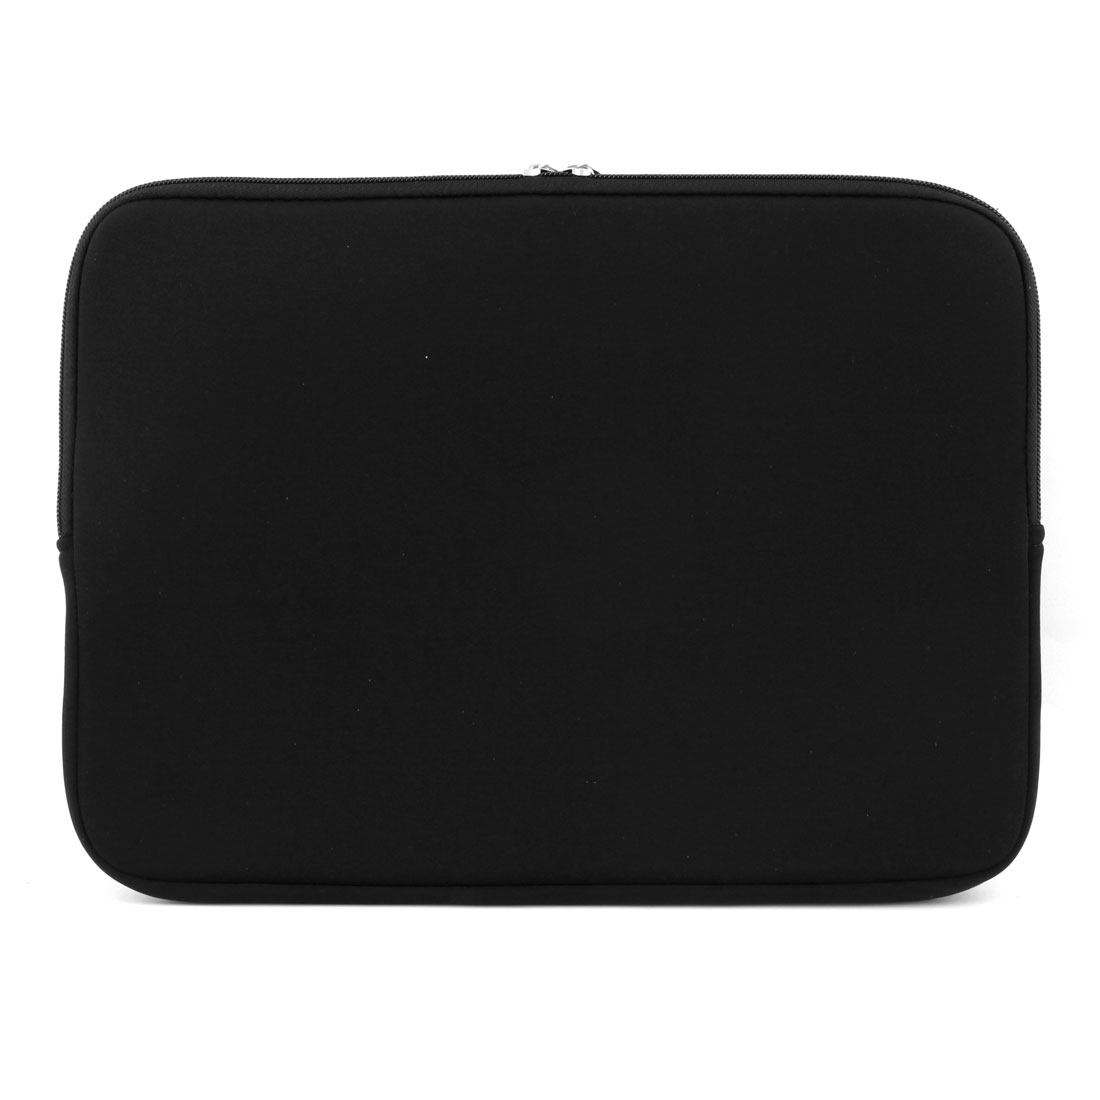 Tablet Dual Zipper Protective Sleeve Case Black for Macbook Air Pro 13.3""